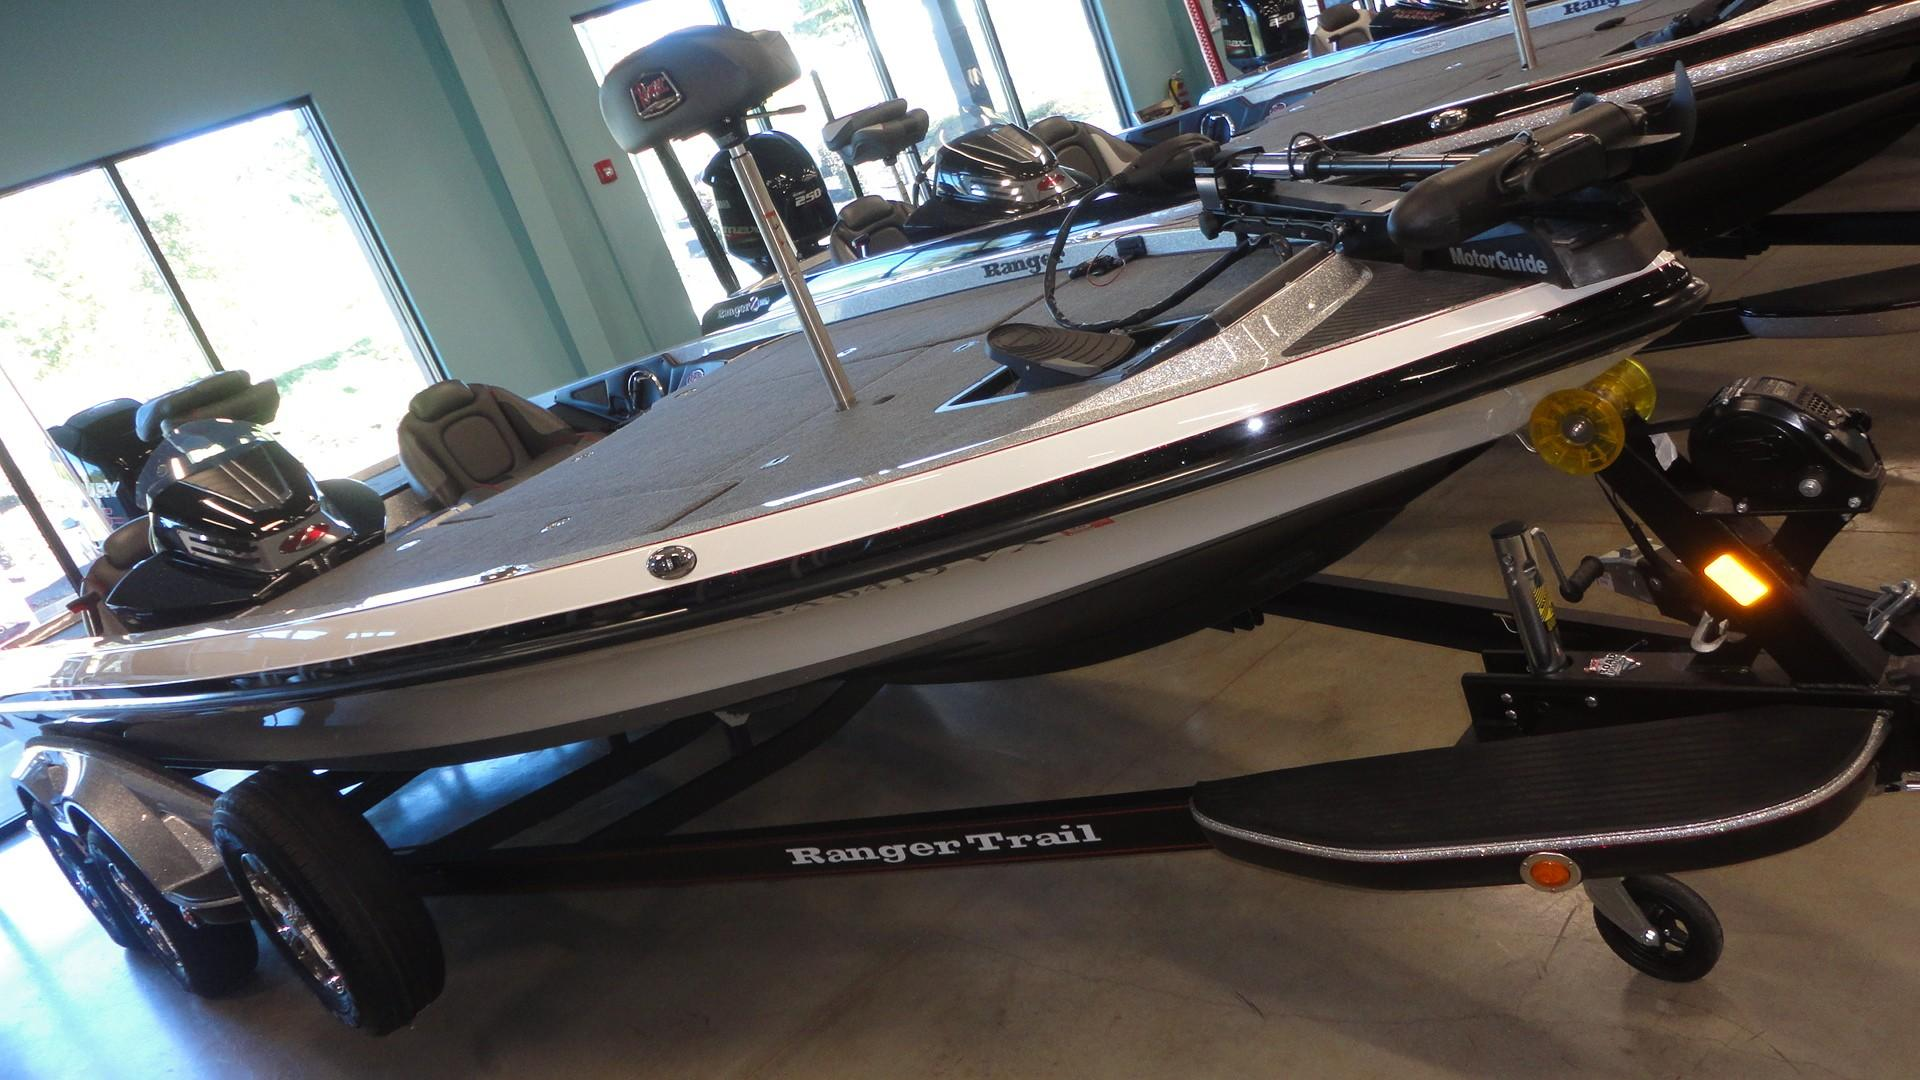 6508231_20171025071915421_1_XLARGE?w=600&h=337&exact=1 boats for sale augusta marine Nauticstar Boats 2200 XS at gsmportal.co